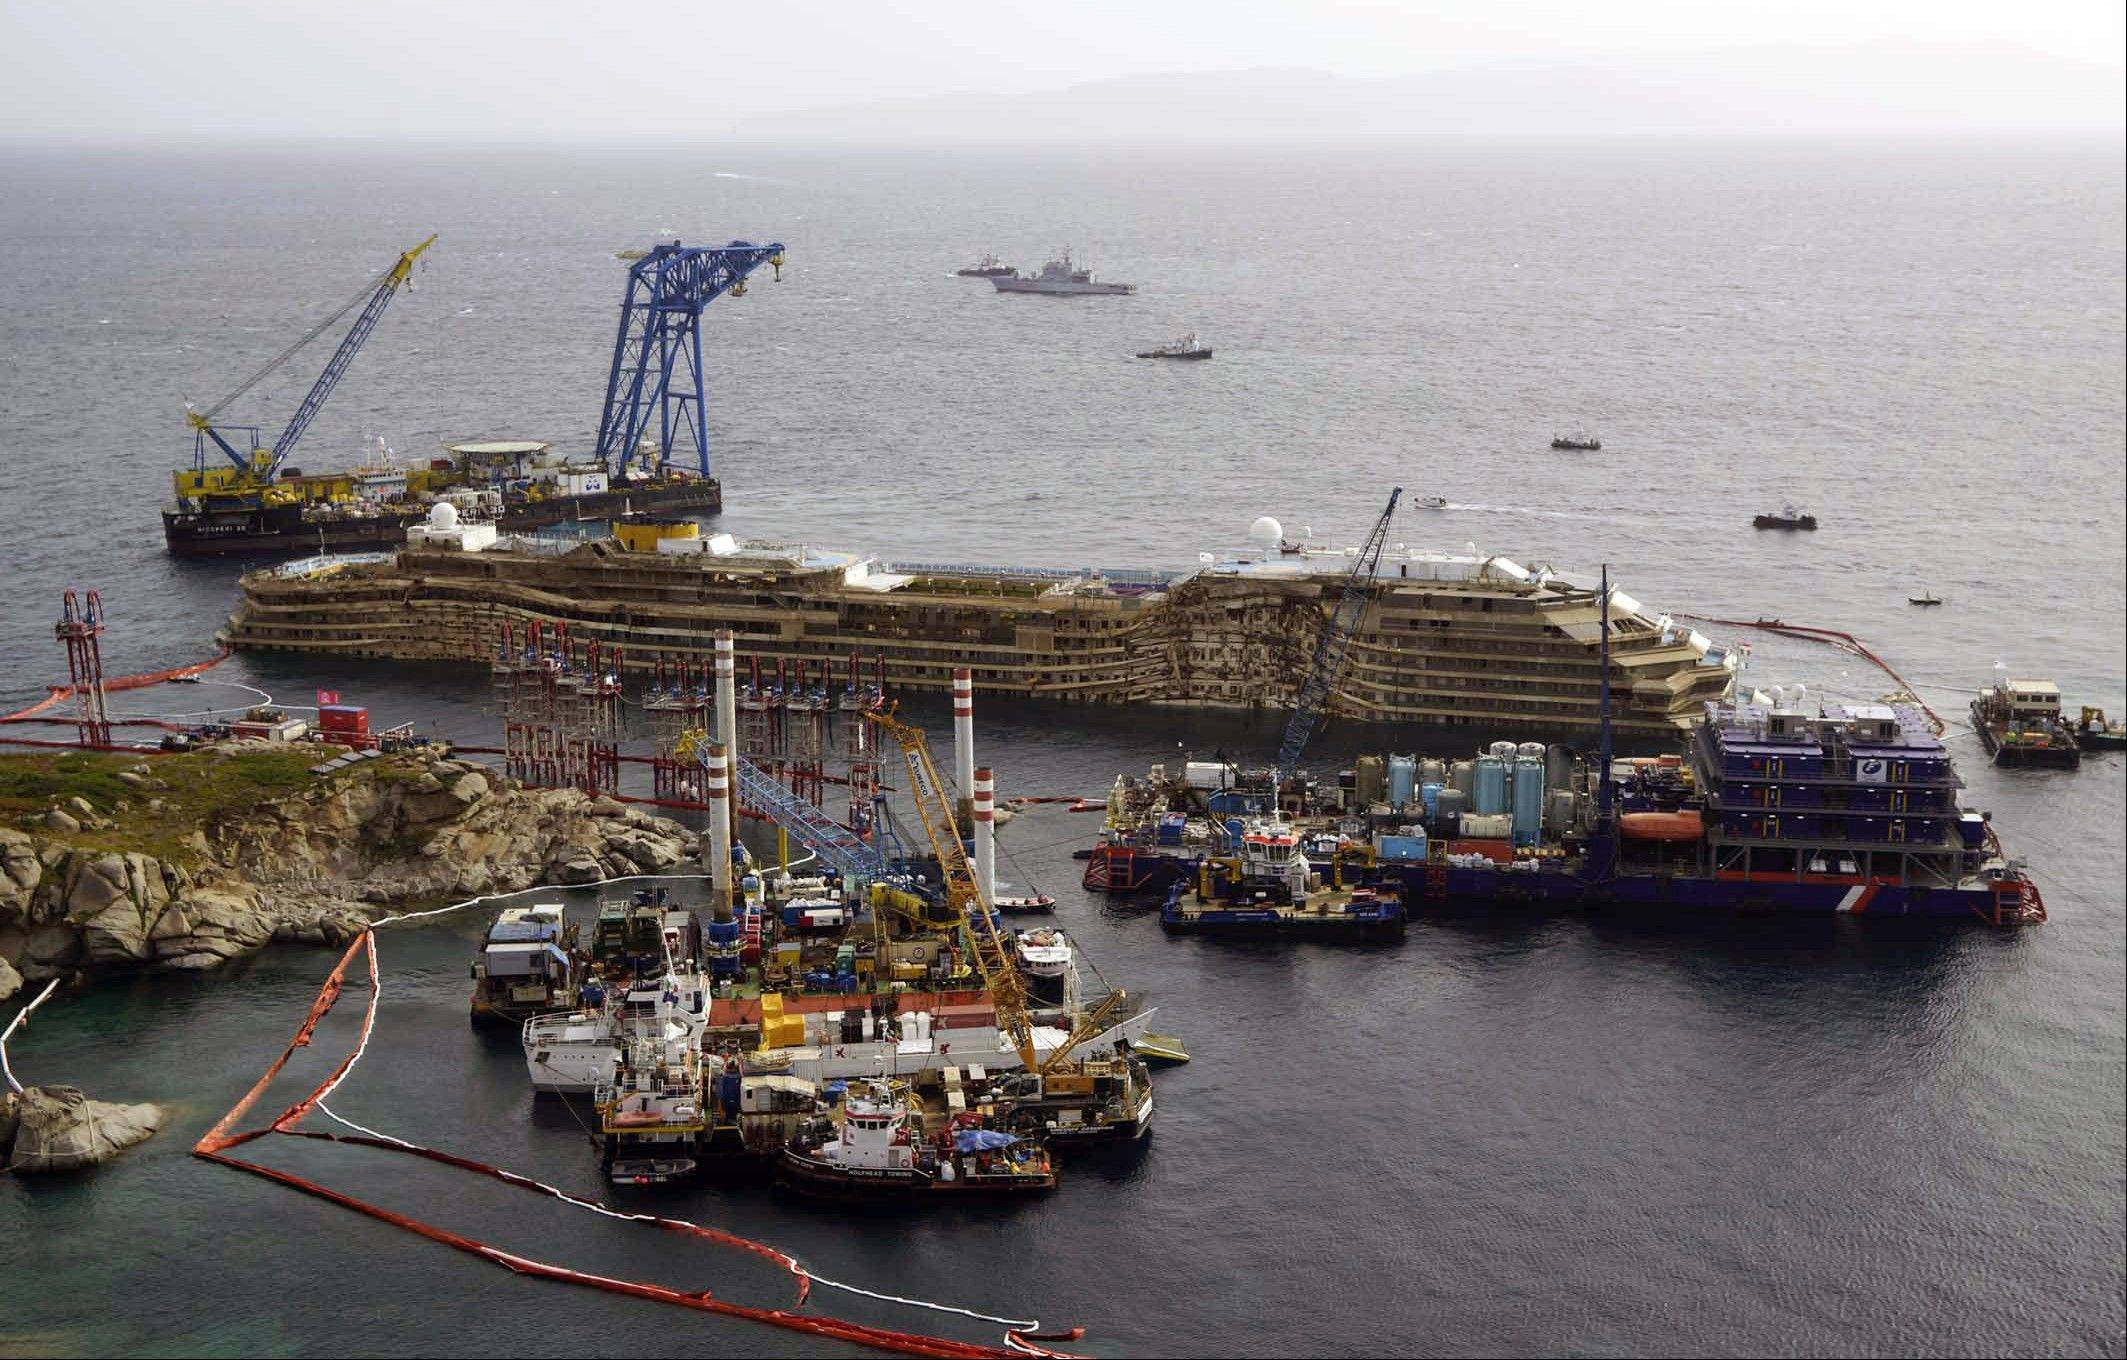 "The Costa Concordia ship is seen after it was lifted upright, on the Tuscan Island of Giglio, Italy, Tuesday morning, Sept. 17, 2013. The crippled cruise ship was pulled completely upright early Tuesday after a complicated, 19-hour operation to wrench it from its side where it capsized last year off Tuscany, with officials declaring it a ""perfect"" end to a daring and unprecedented engineering feat."